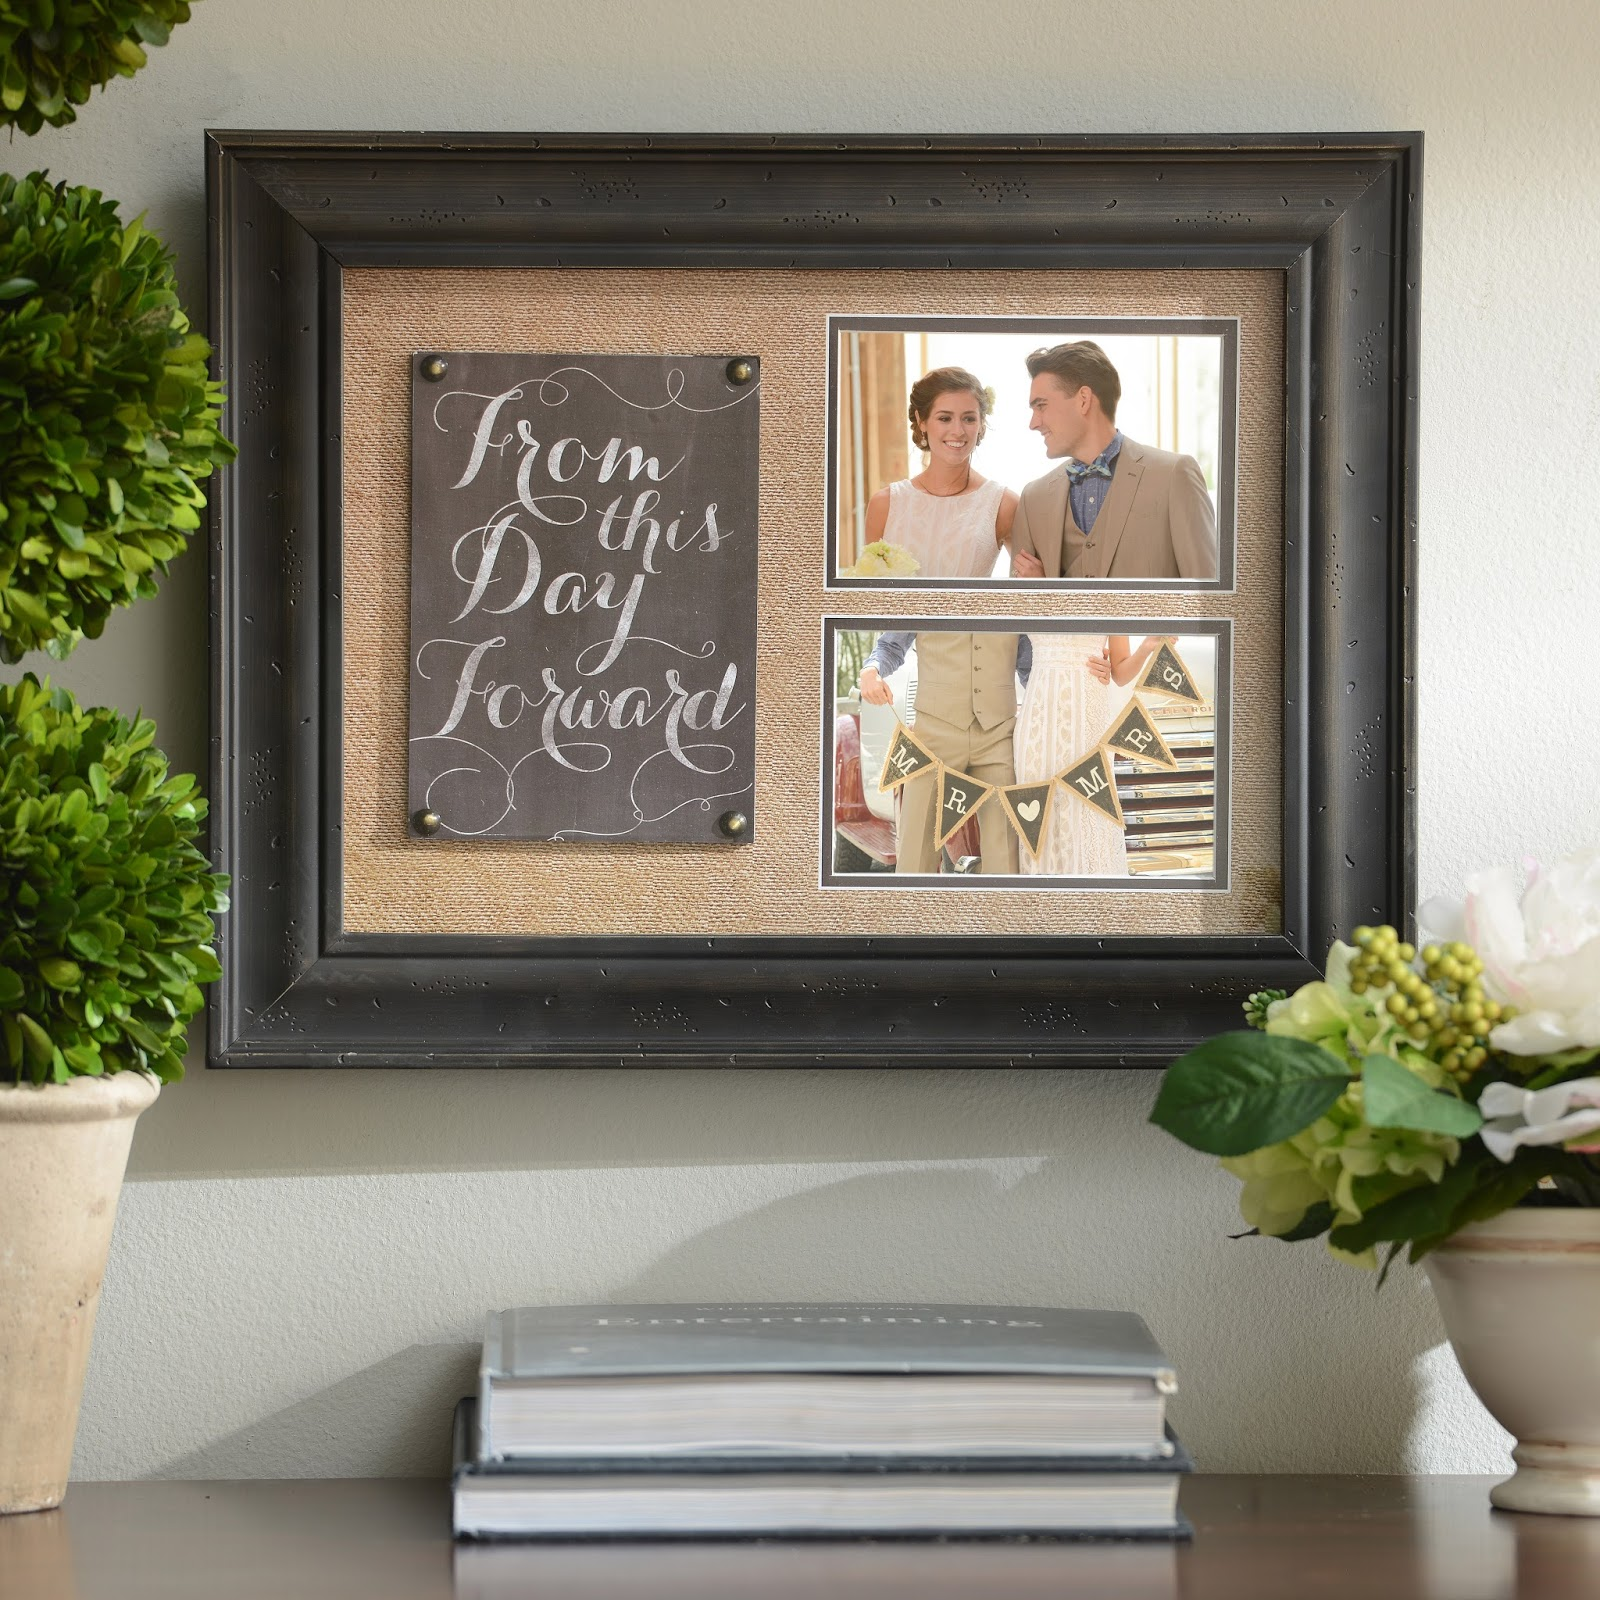 Kirkland home dcor selection product you should try on the wall dcor collection you could find items such as clocks collage frame picture frame wall quote wall organization and wall decoration itself jeuxipadfo Gallery